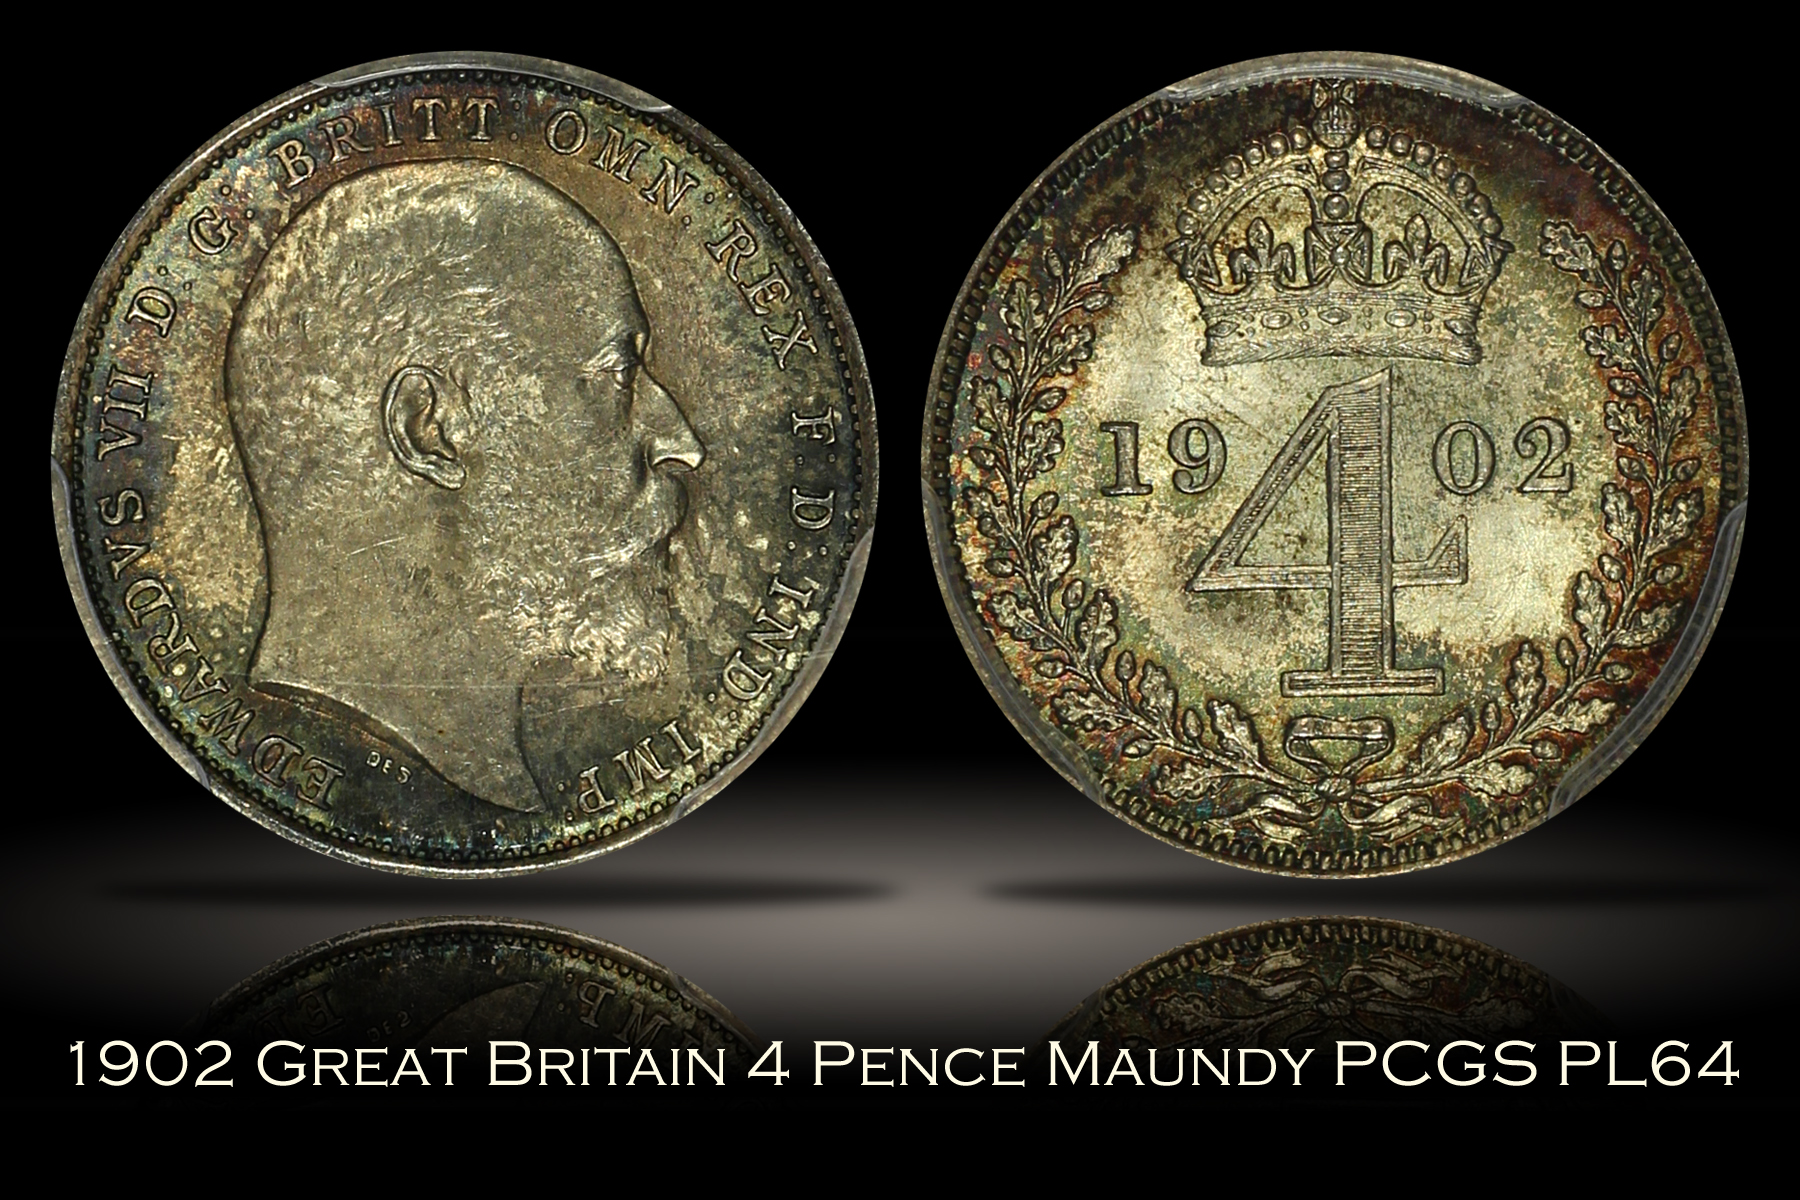 1902 Great Britain 4 Pence Maundy PCGS PL64